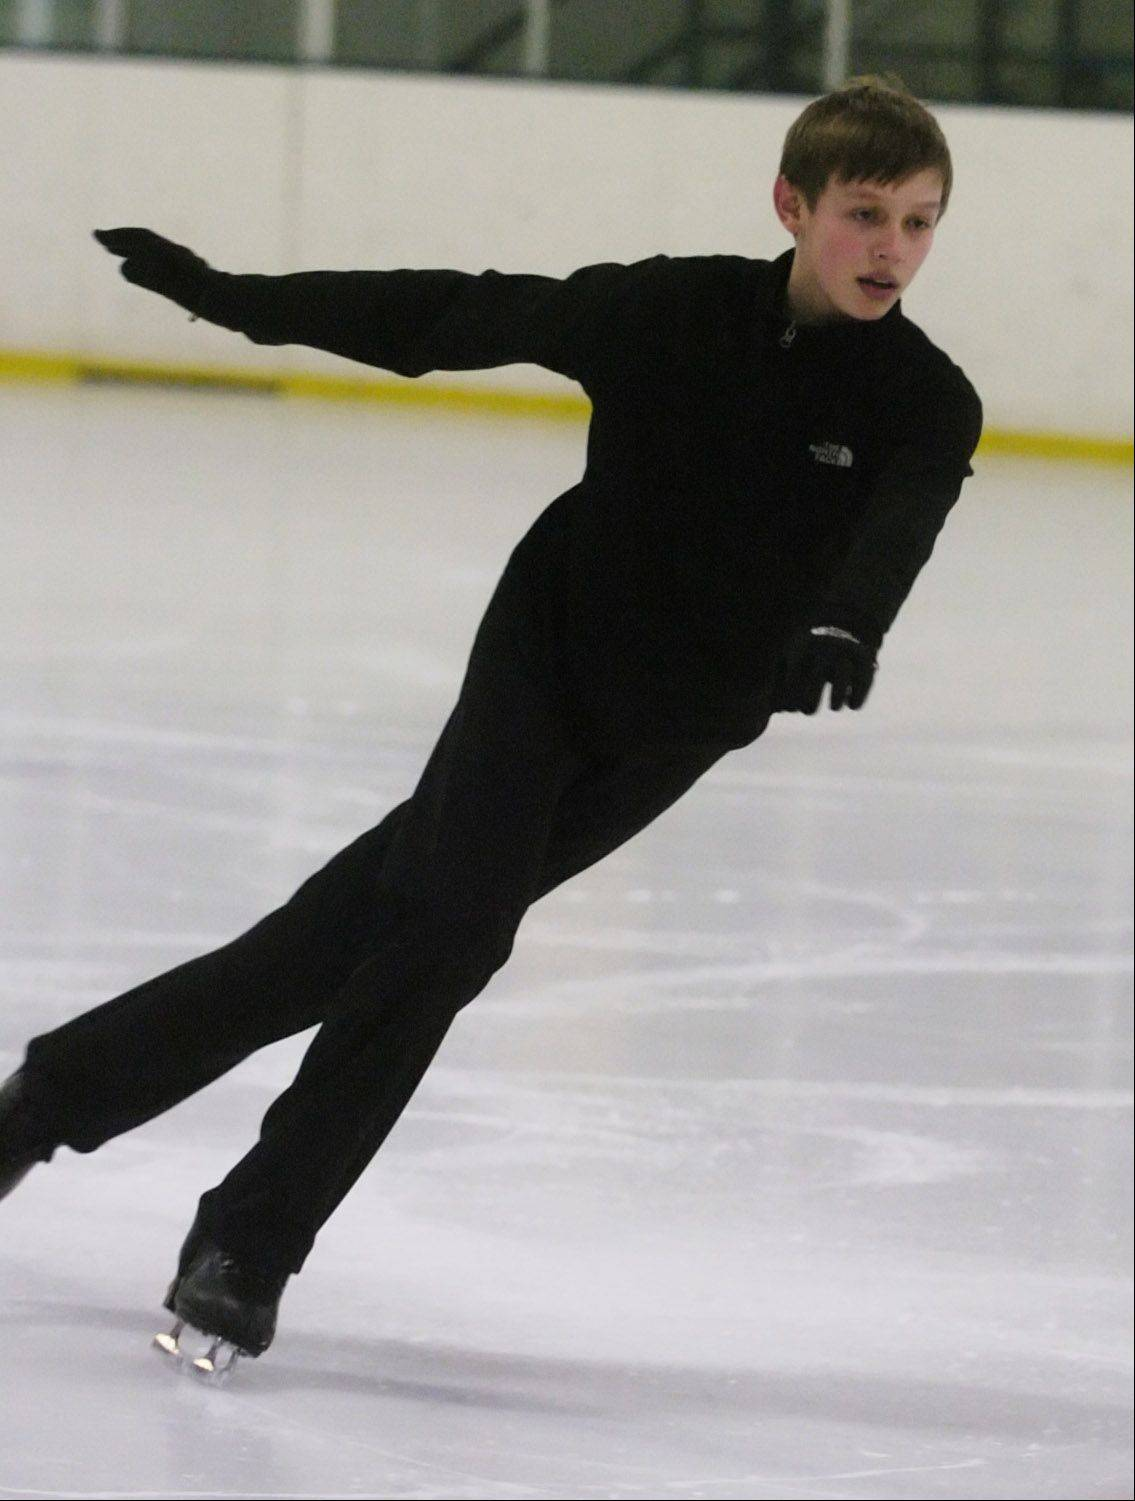 Figure skater Derek Wagner of Geneva finished ninth in the juvenile boys competition at last year's U.S. Junior Figure Skating Championships in December.